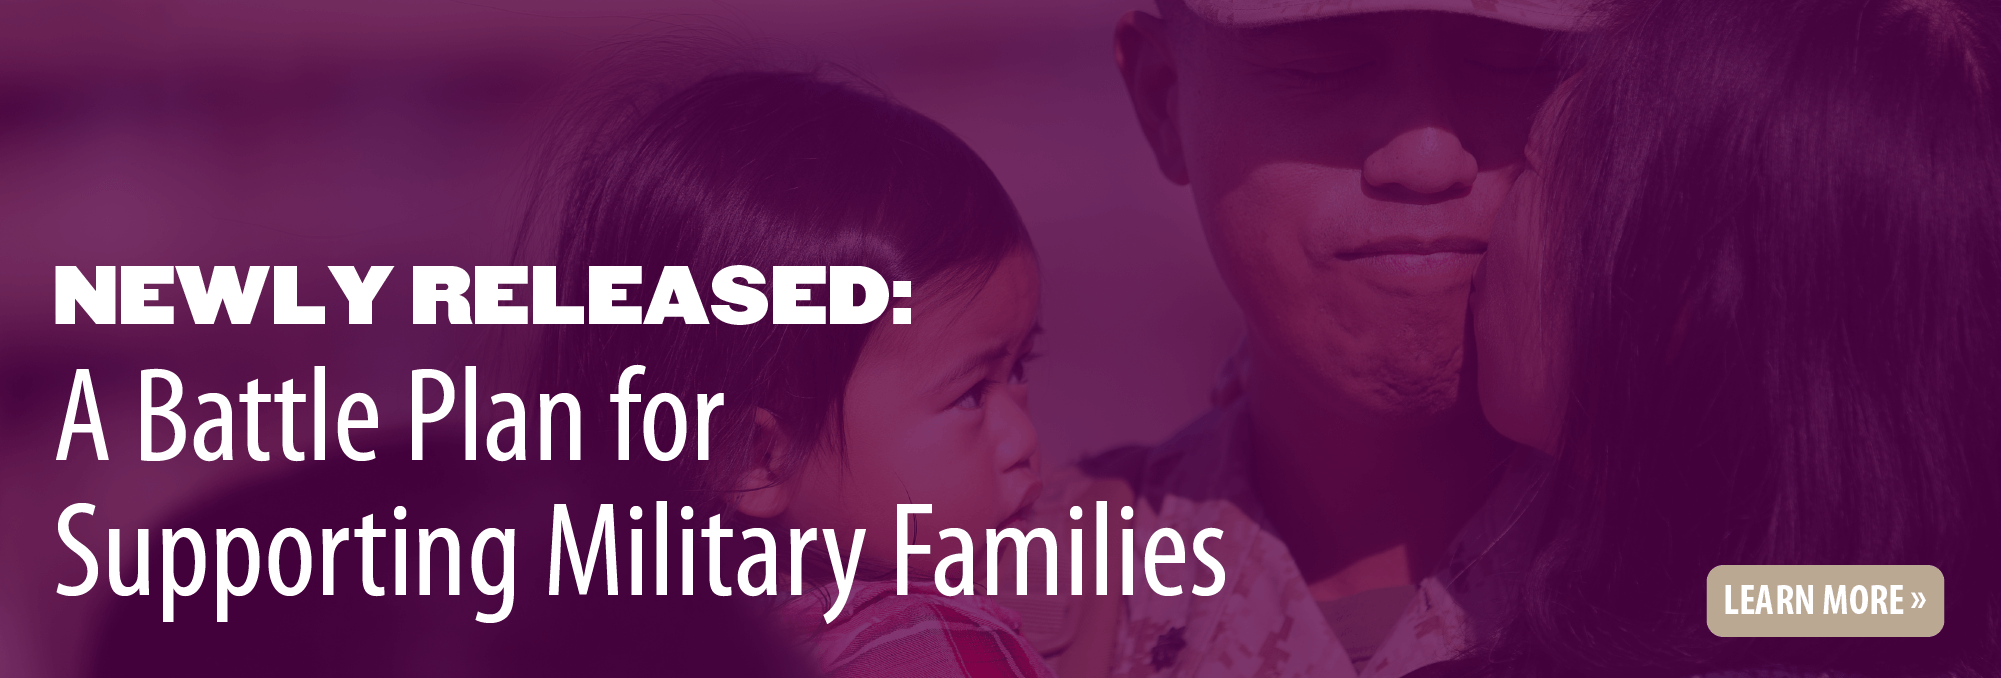 Newly released: A Battle Plan for Supporting Military Families. Click to learn more.